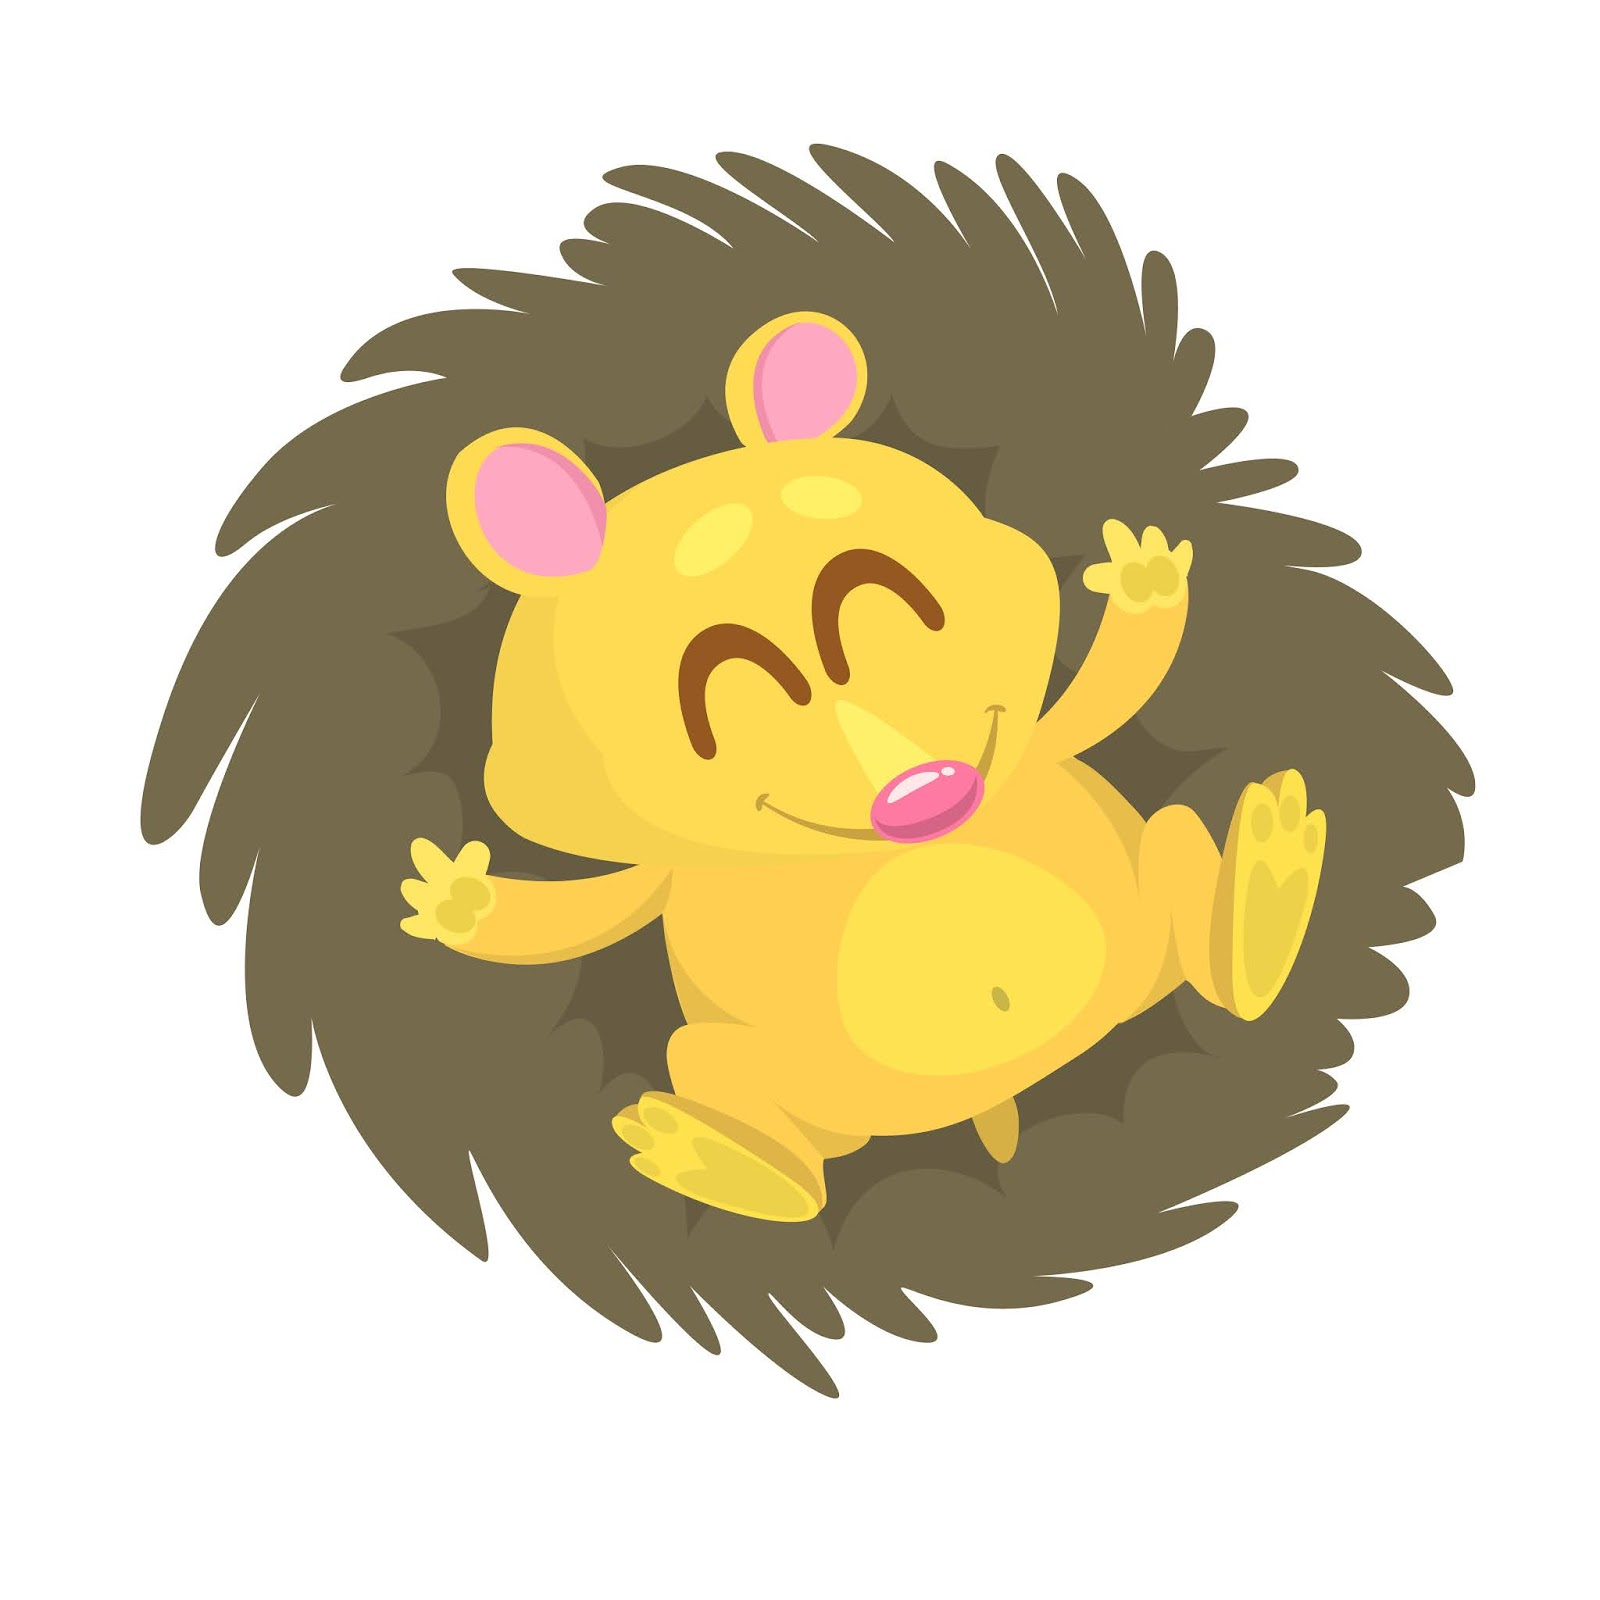 Cartoon Hedgehog Free Download Vector CDR, AI, EPS and PNG Formats